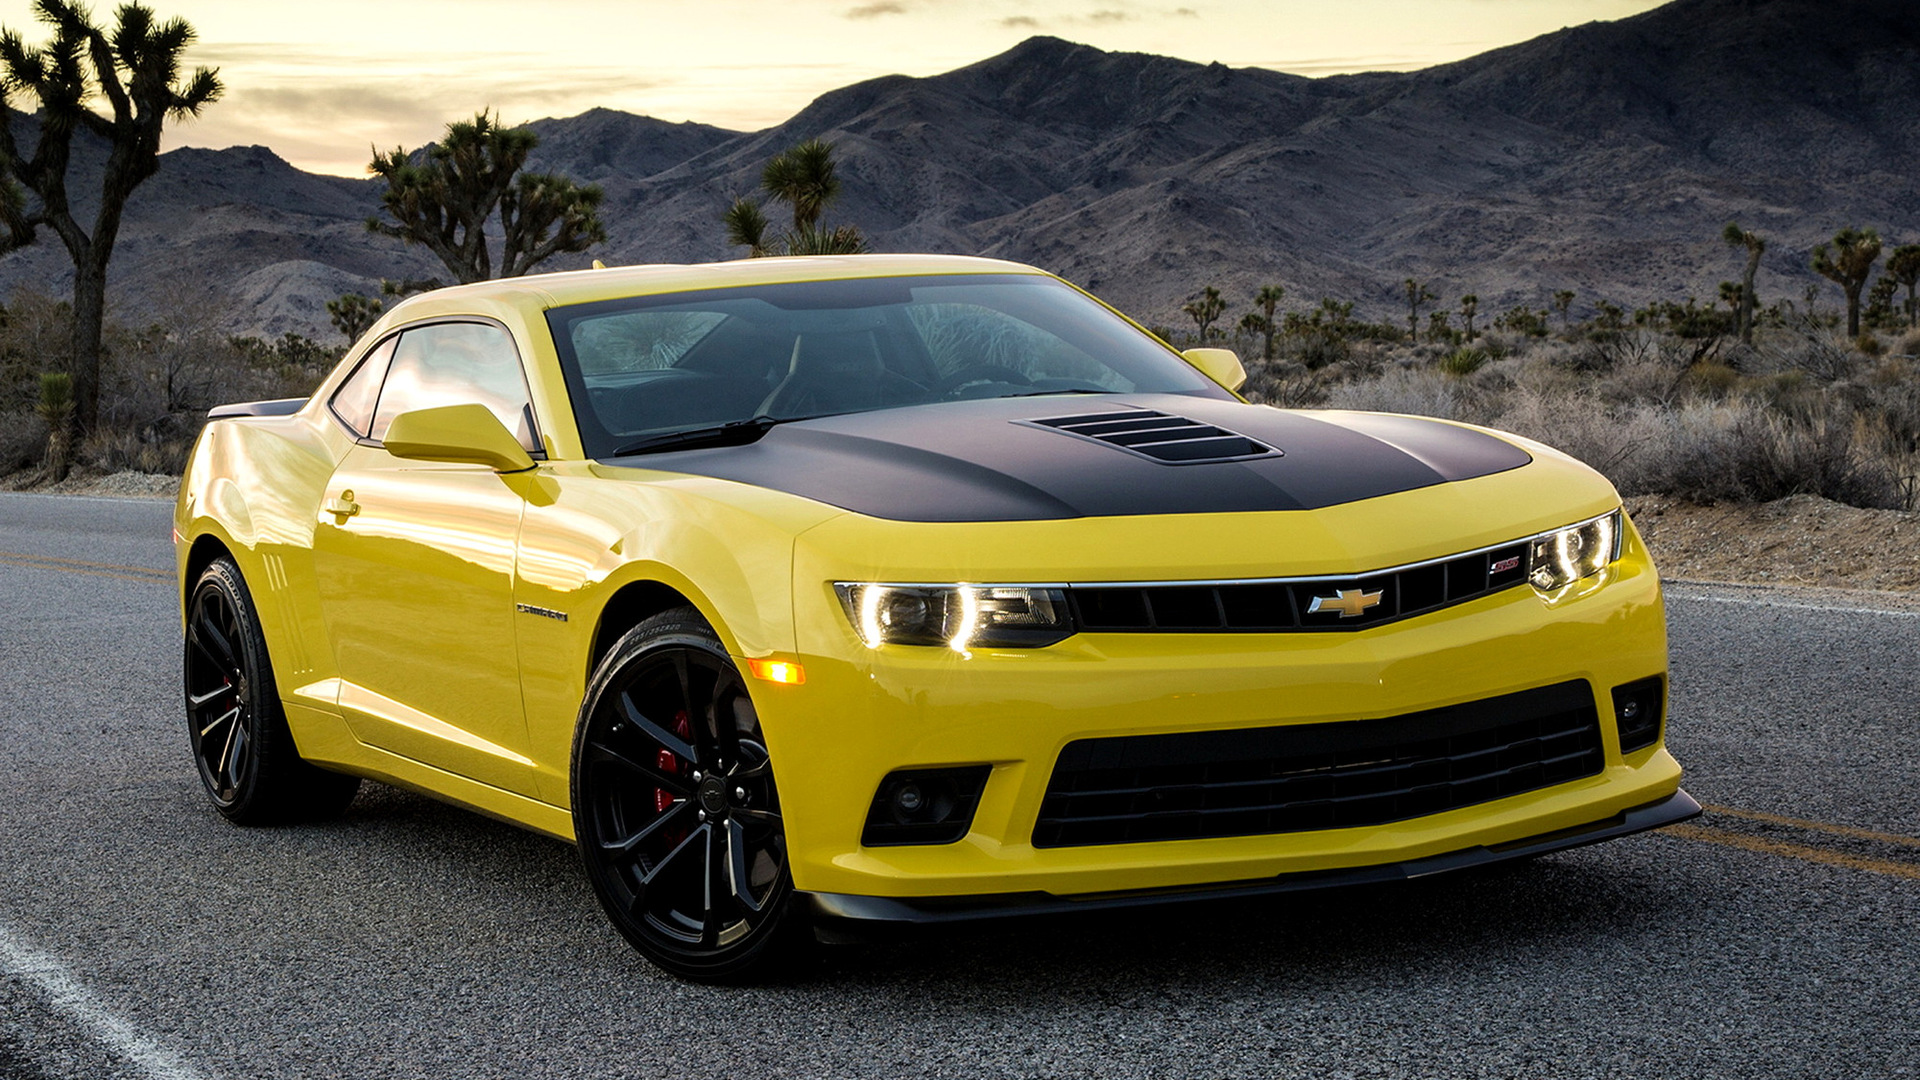 Chevrolet Camaro SS 1LE (2014) Wallpapers and HD Images